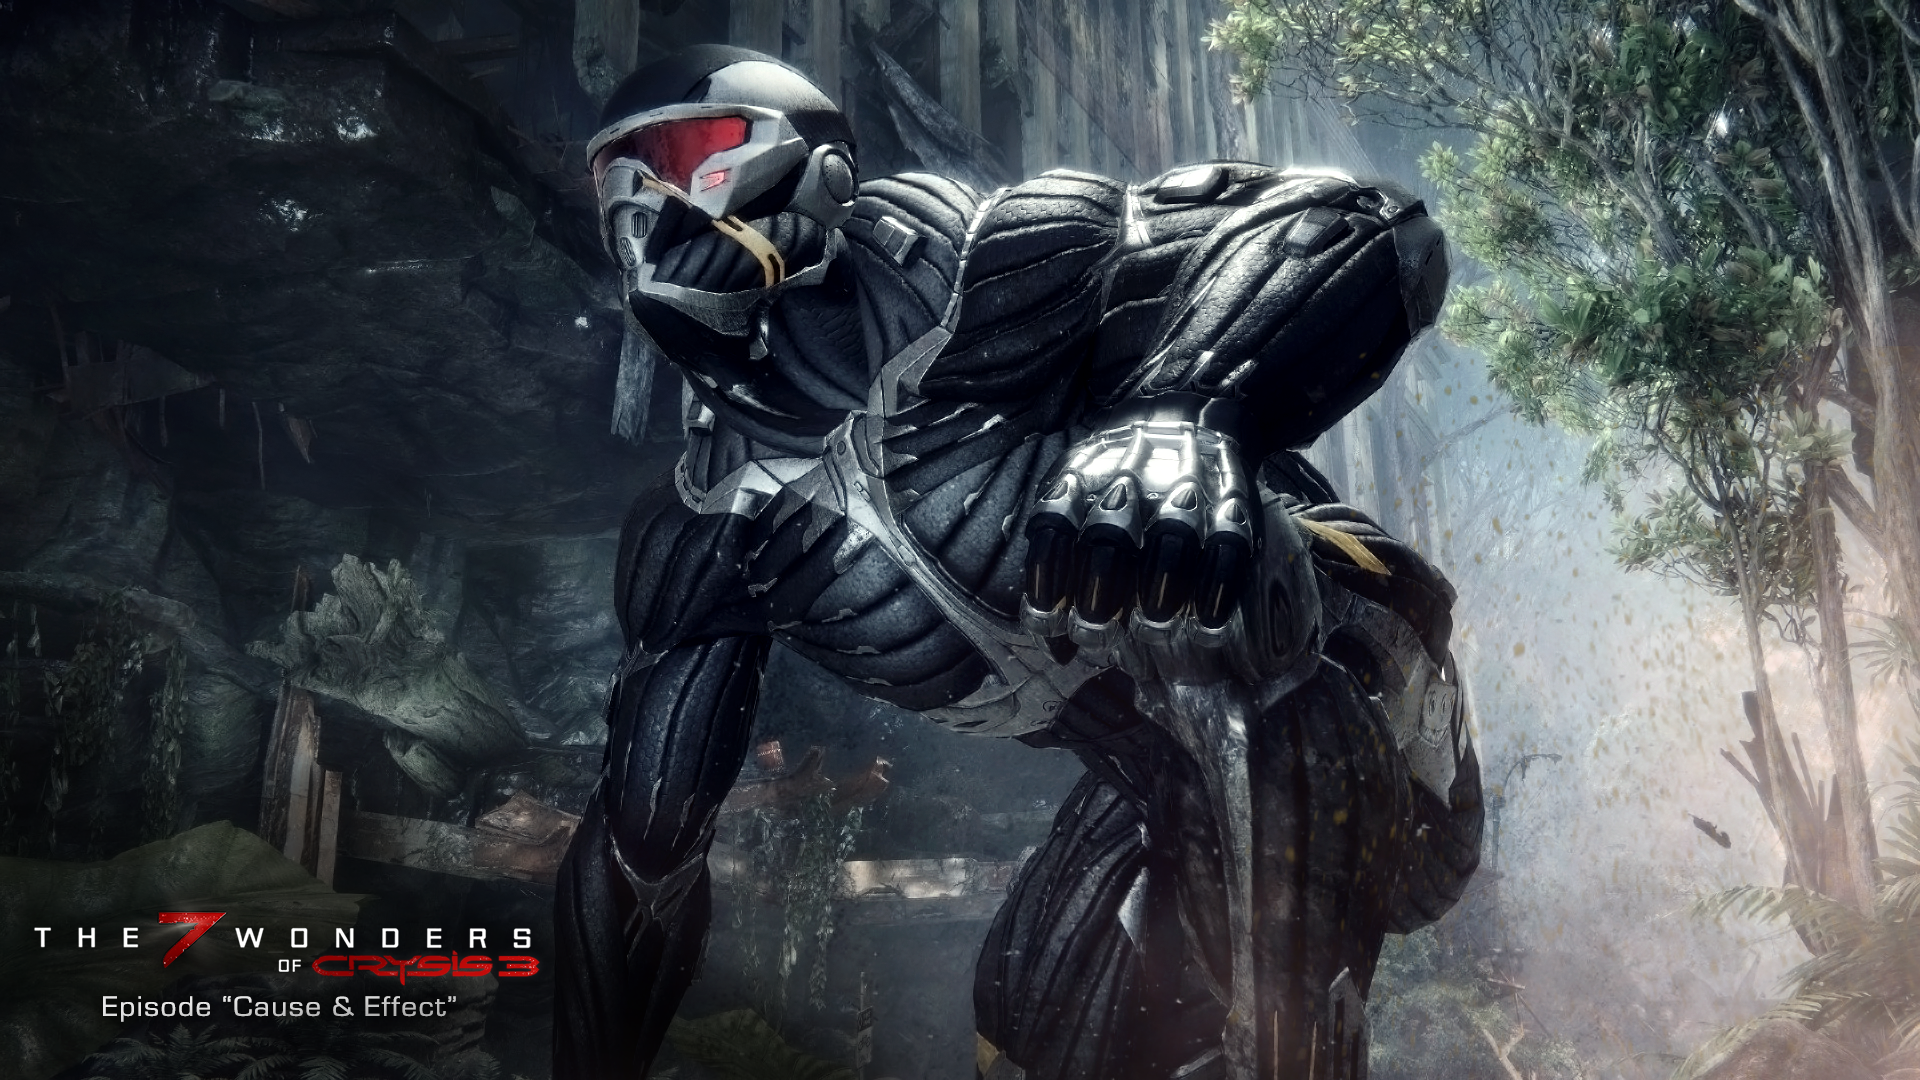 Crysis 3 wallpapers (4) | HD Wallpapers